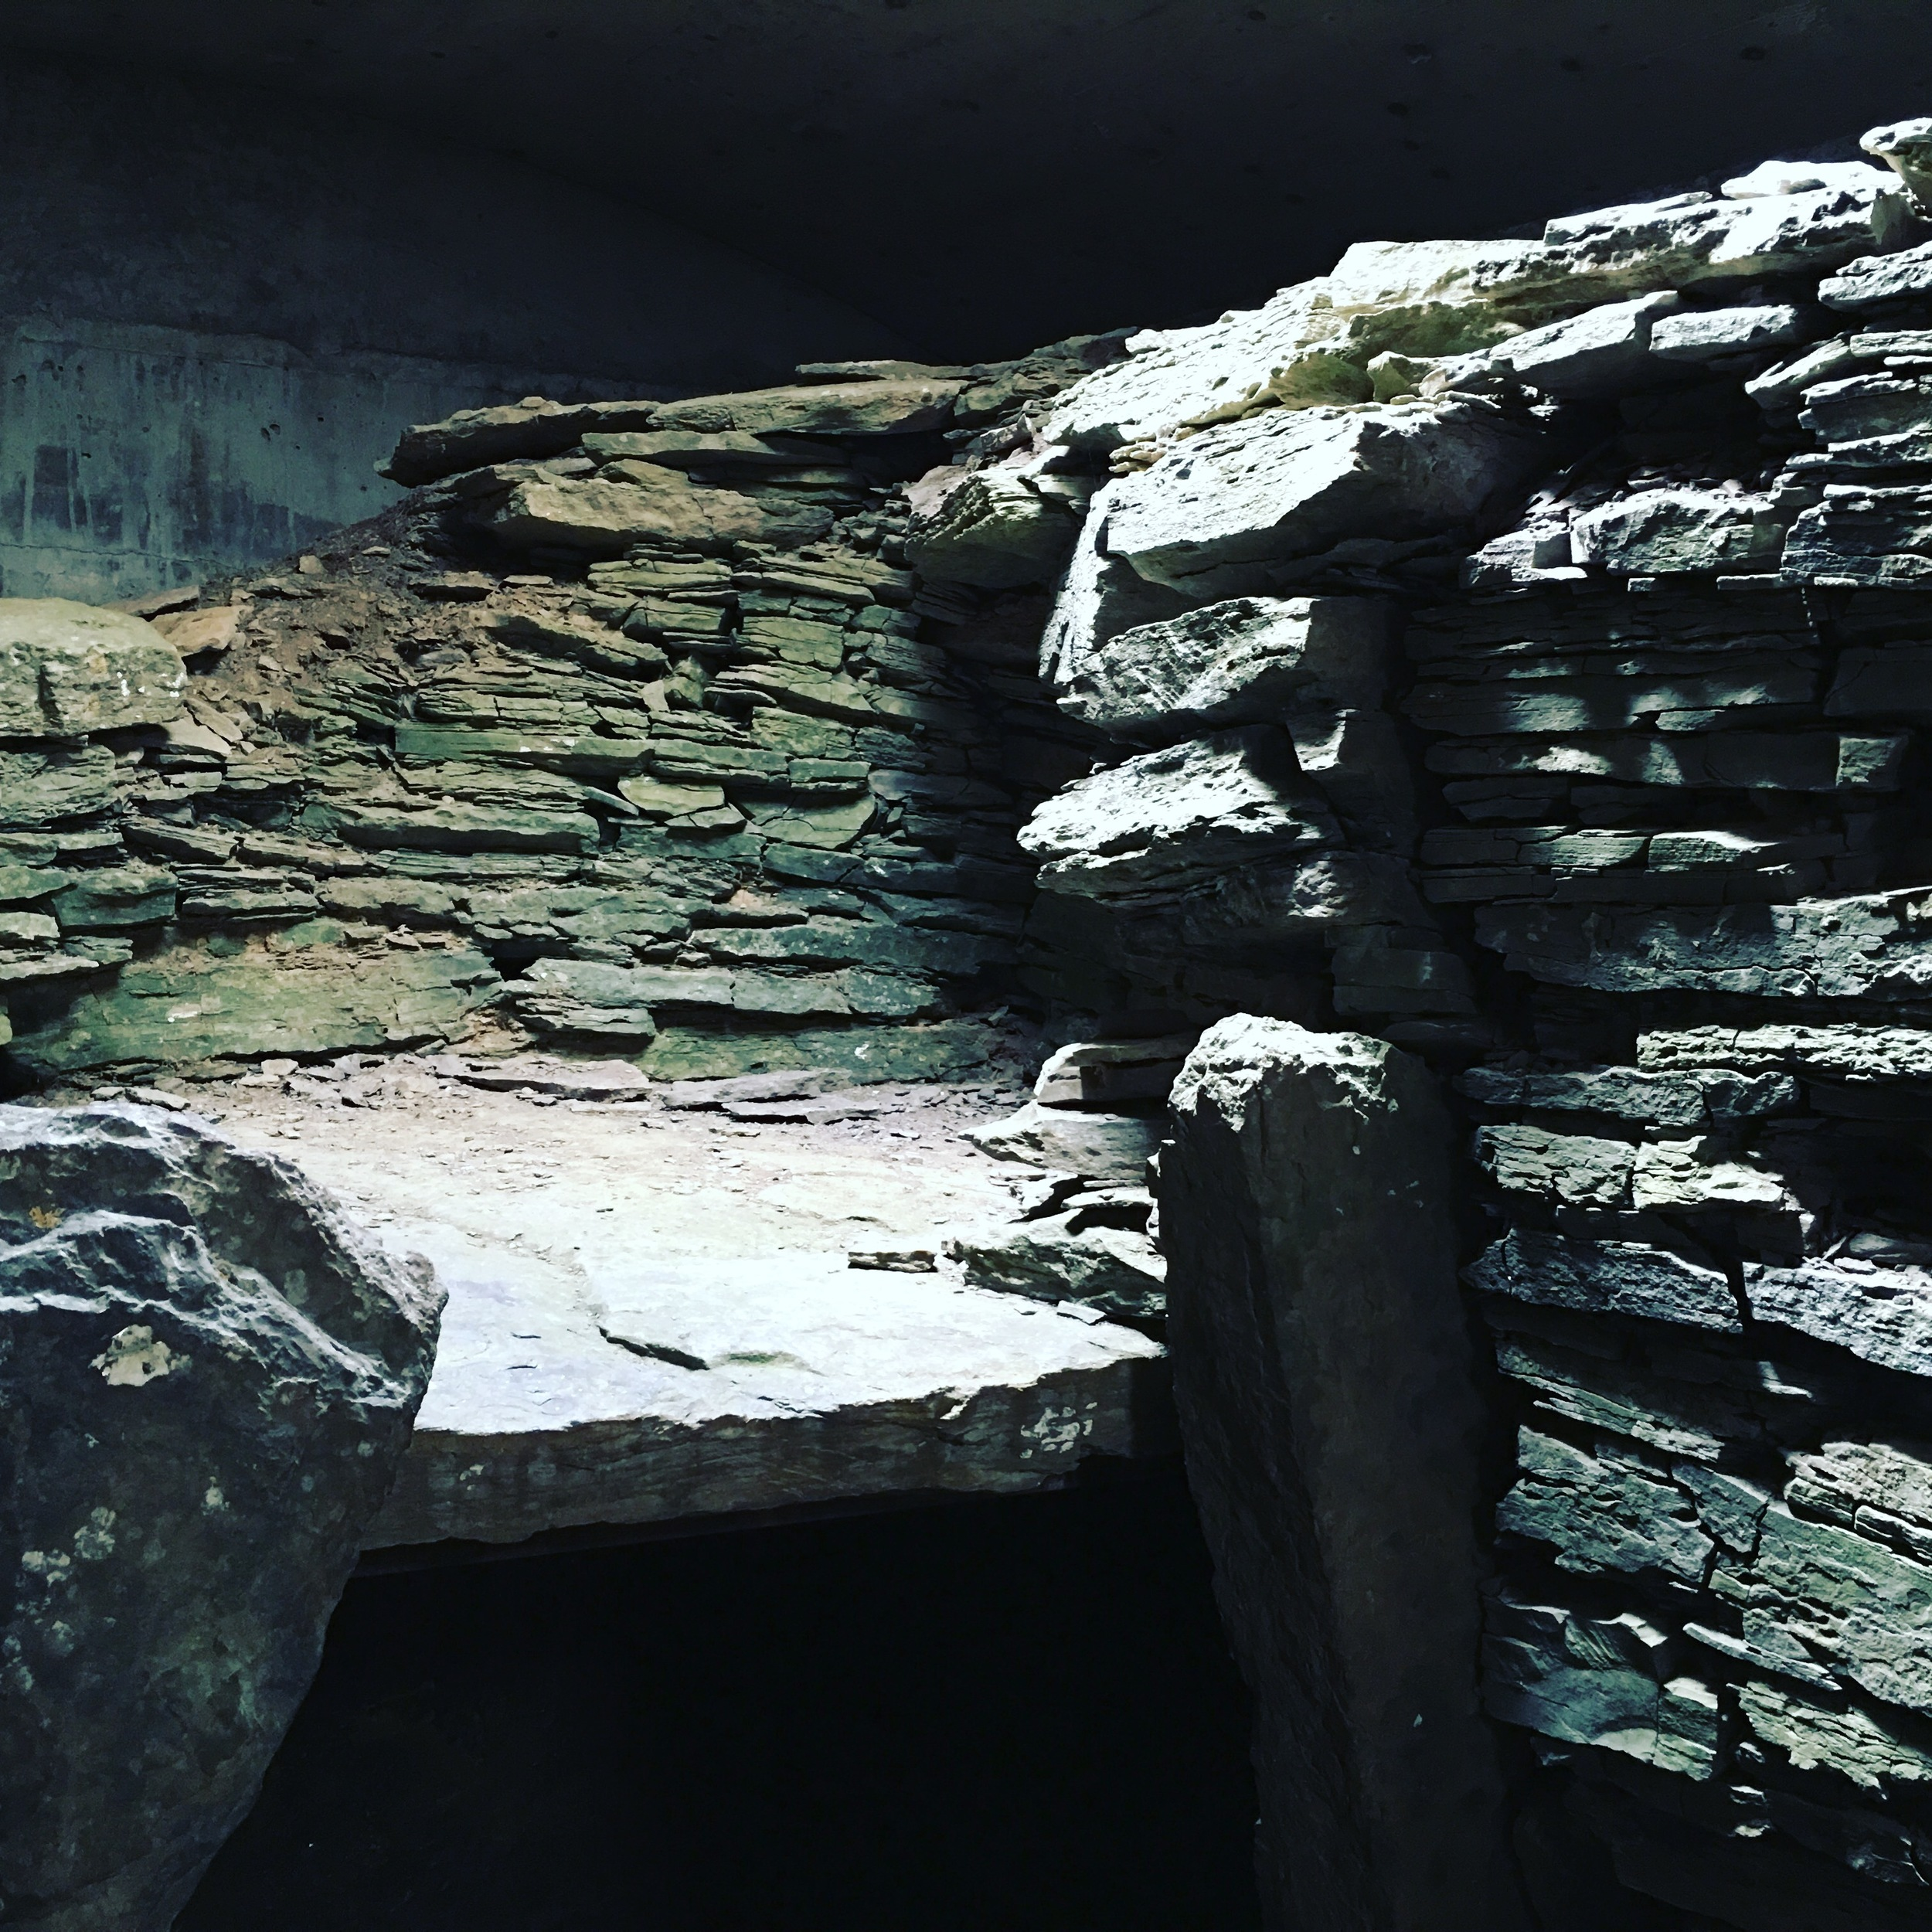 Inside the Neolithic burial cairn The Tomb of the Eagles.